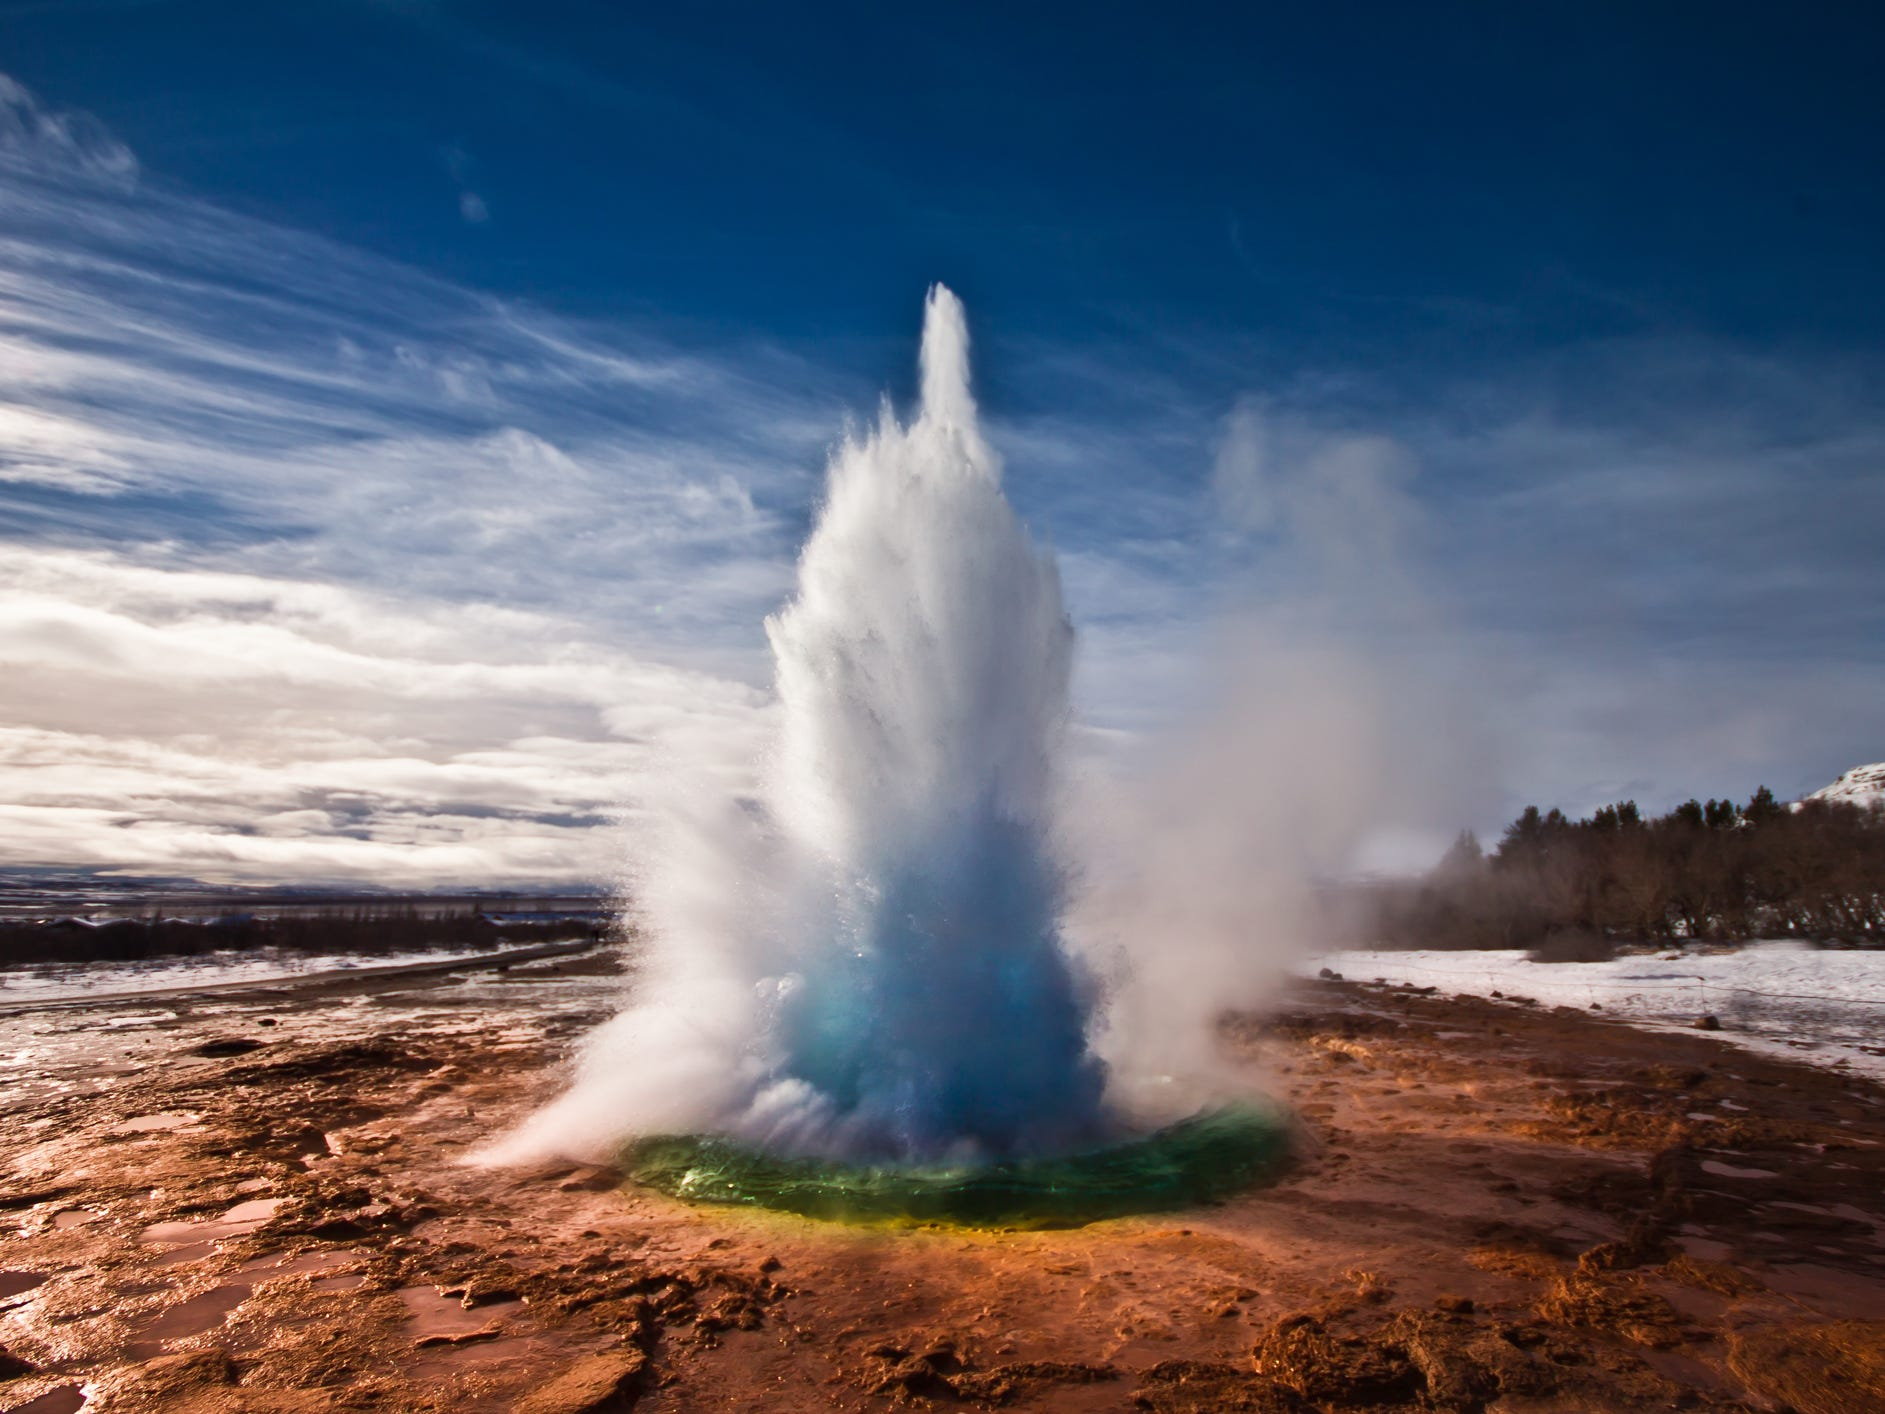 The Strokkur geyser in Iceland.